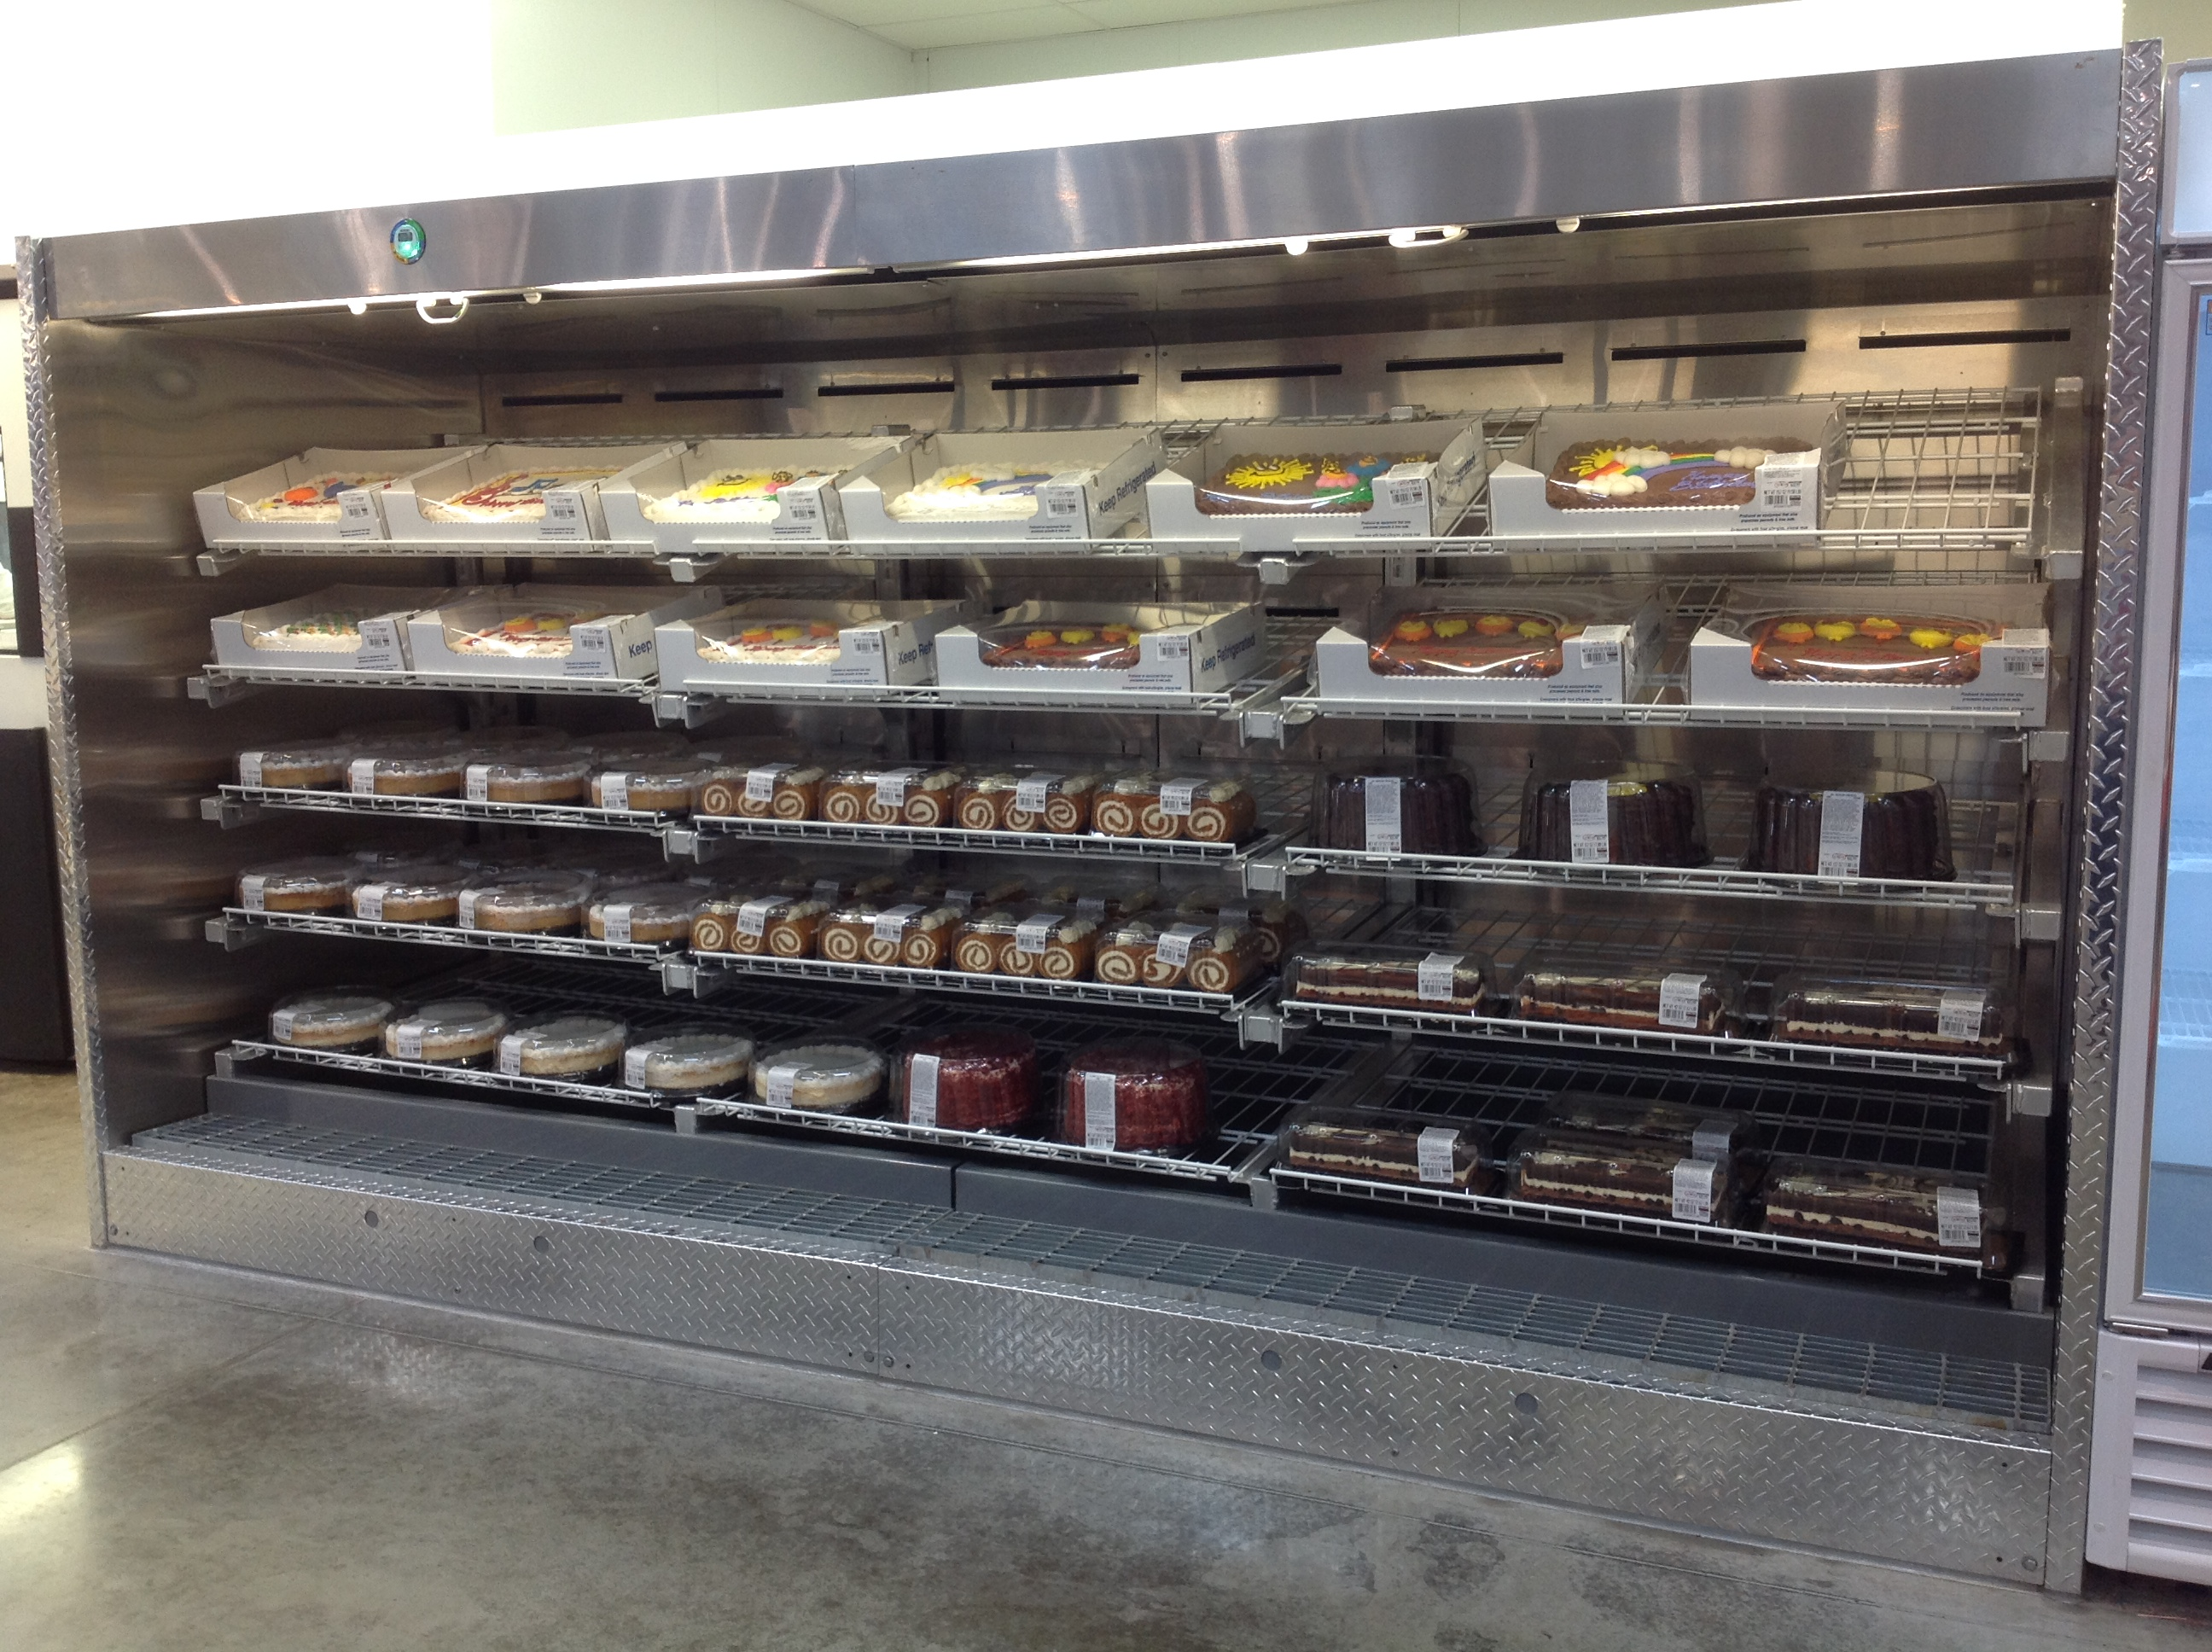 Do Costco Cakes Have To Be Refrigerated